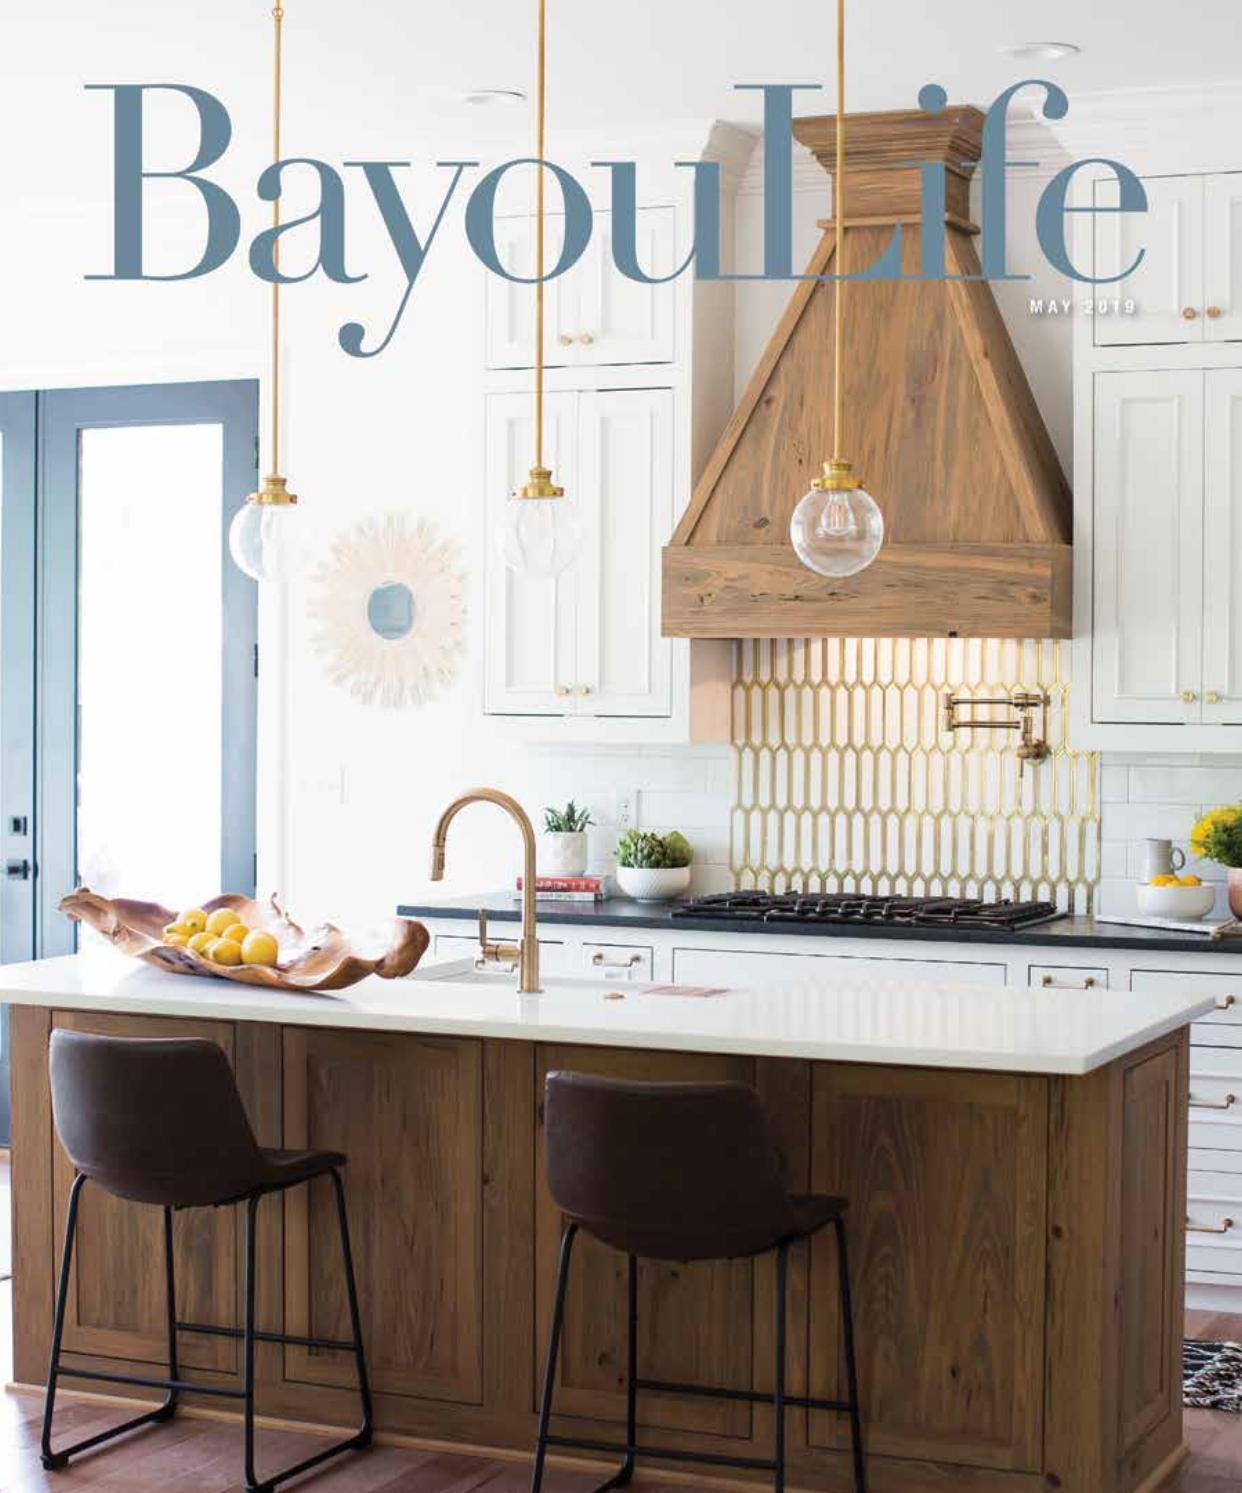 f13b243402b1 BayouLife Magazine May 2019 by BayouLife Magazine - issuu